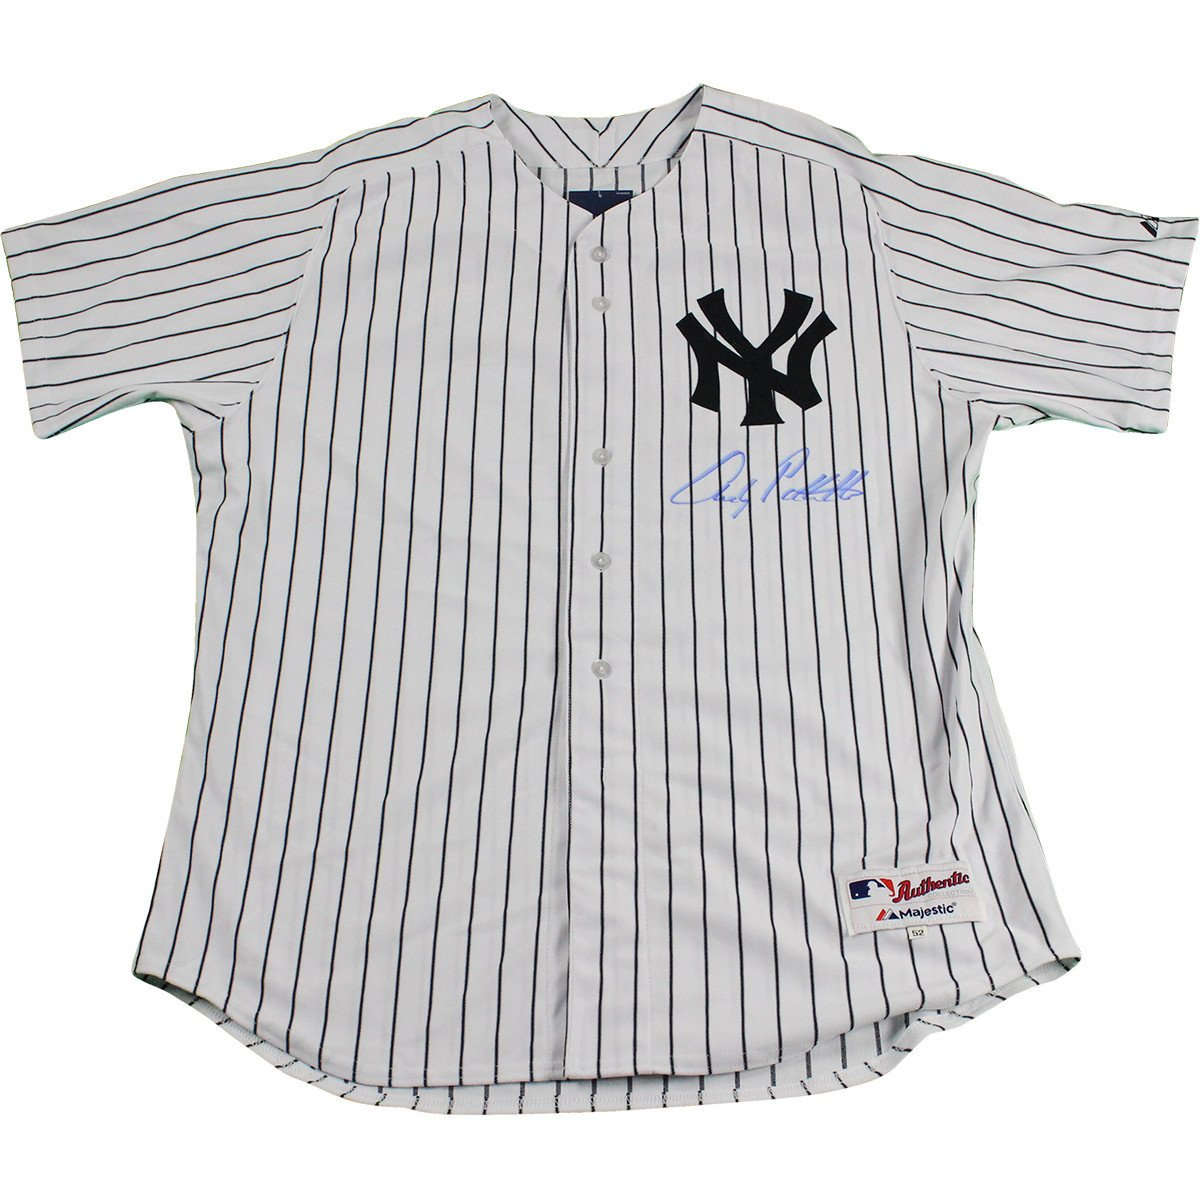 Andy Pettitte Signed Authentic New York Yankees White Home Jersey Signed In Front